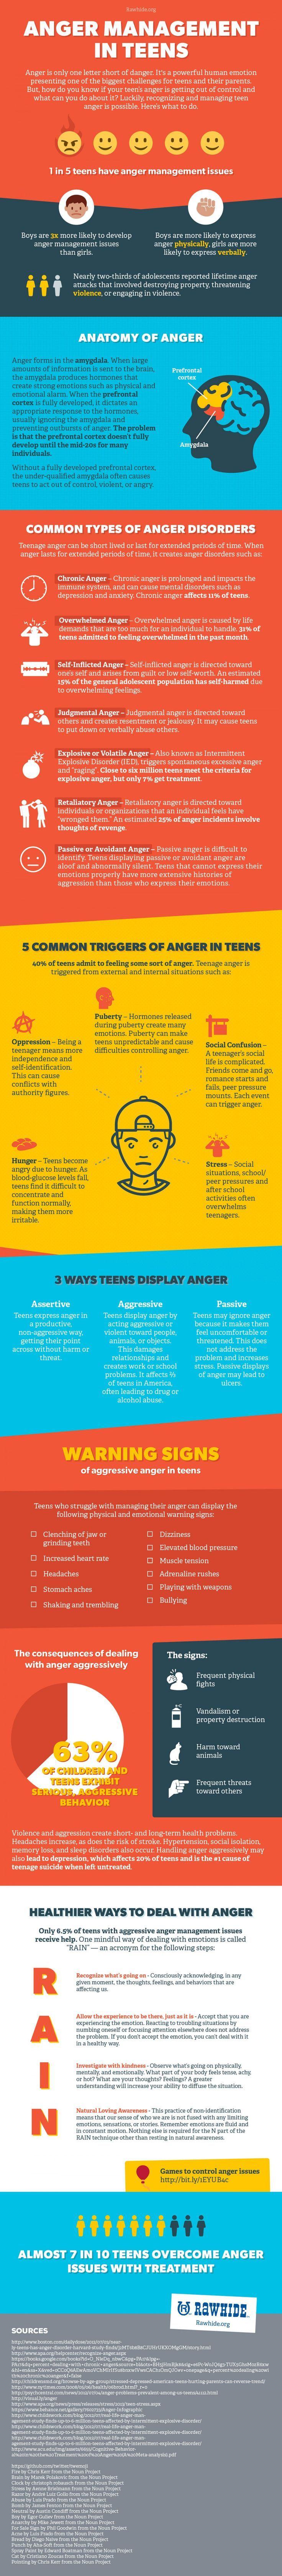 anger management 3 This anger management lesson plan is suitable for 3rd - 6th grade students discuss anger triggers and how they know they are getting angry in this anger lesson plan, students discuss anger vocabulary and how to calm themselves down.